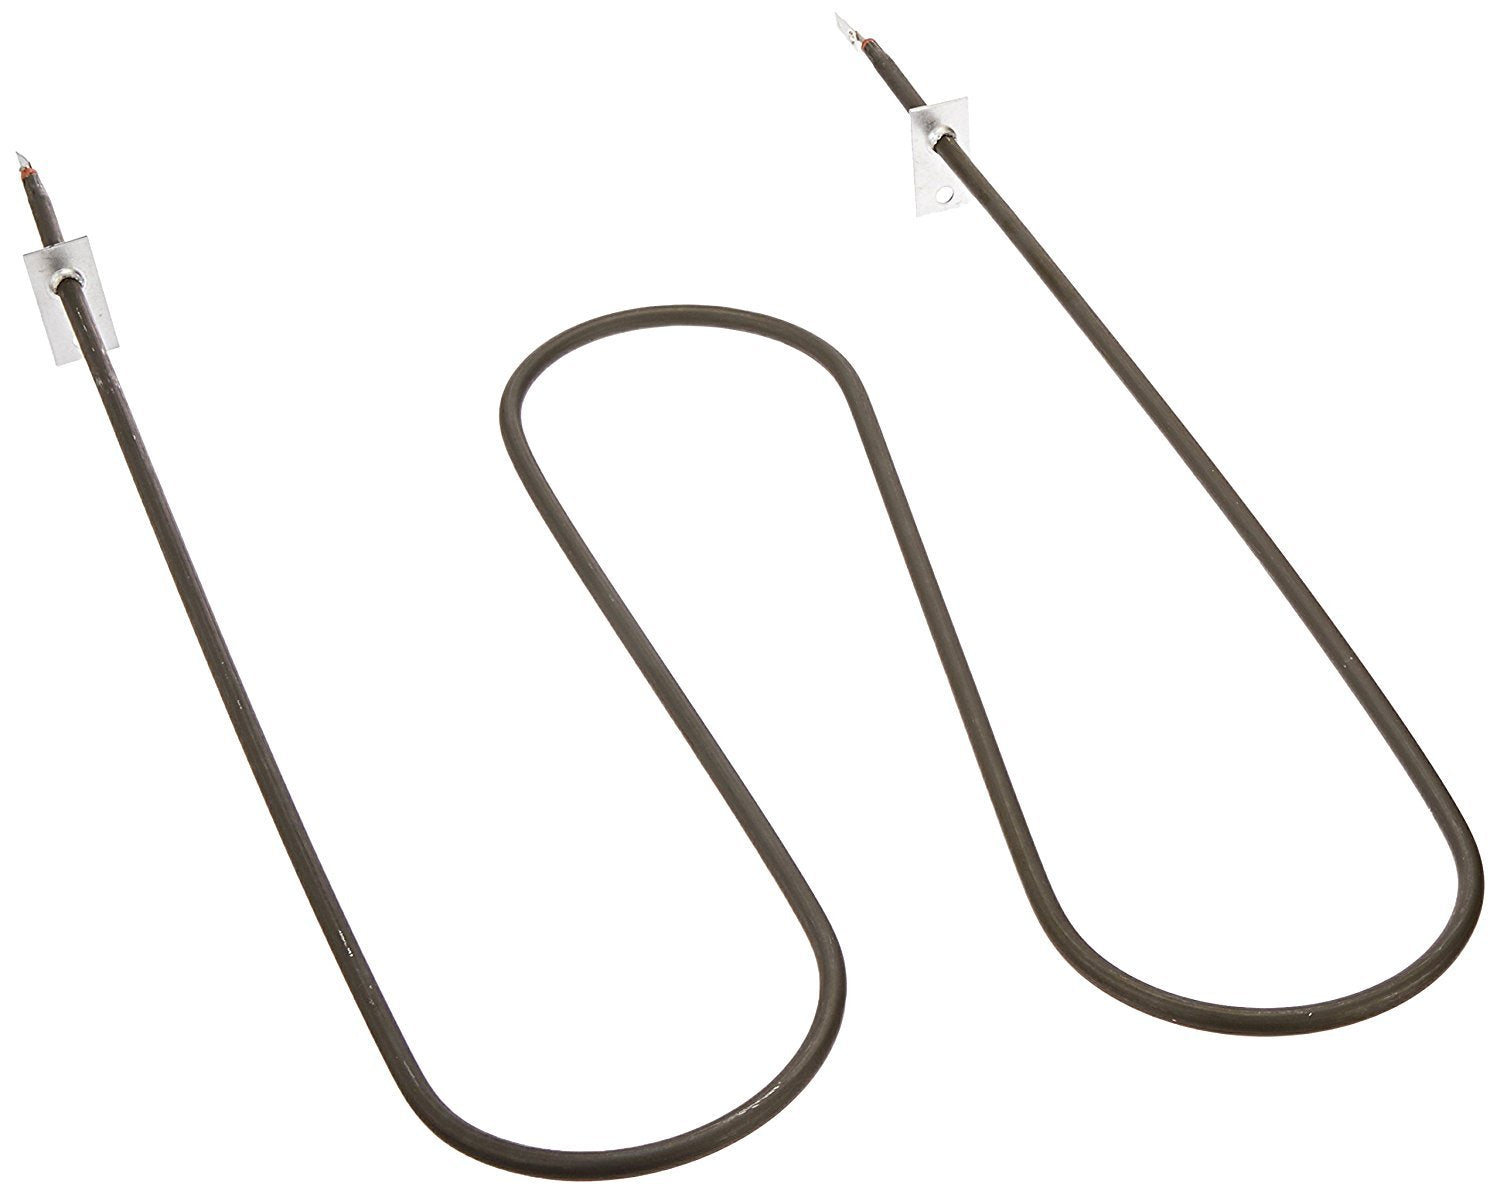 Frigidaire CFEF3016LWC Oven Broil Element Replacement